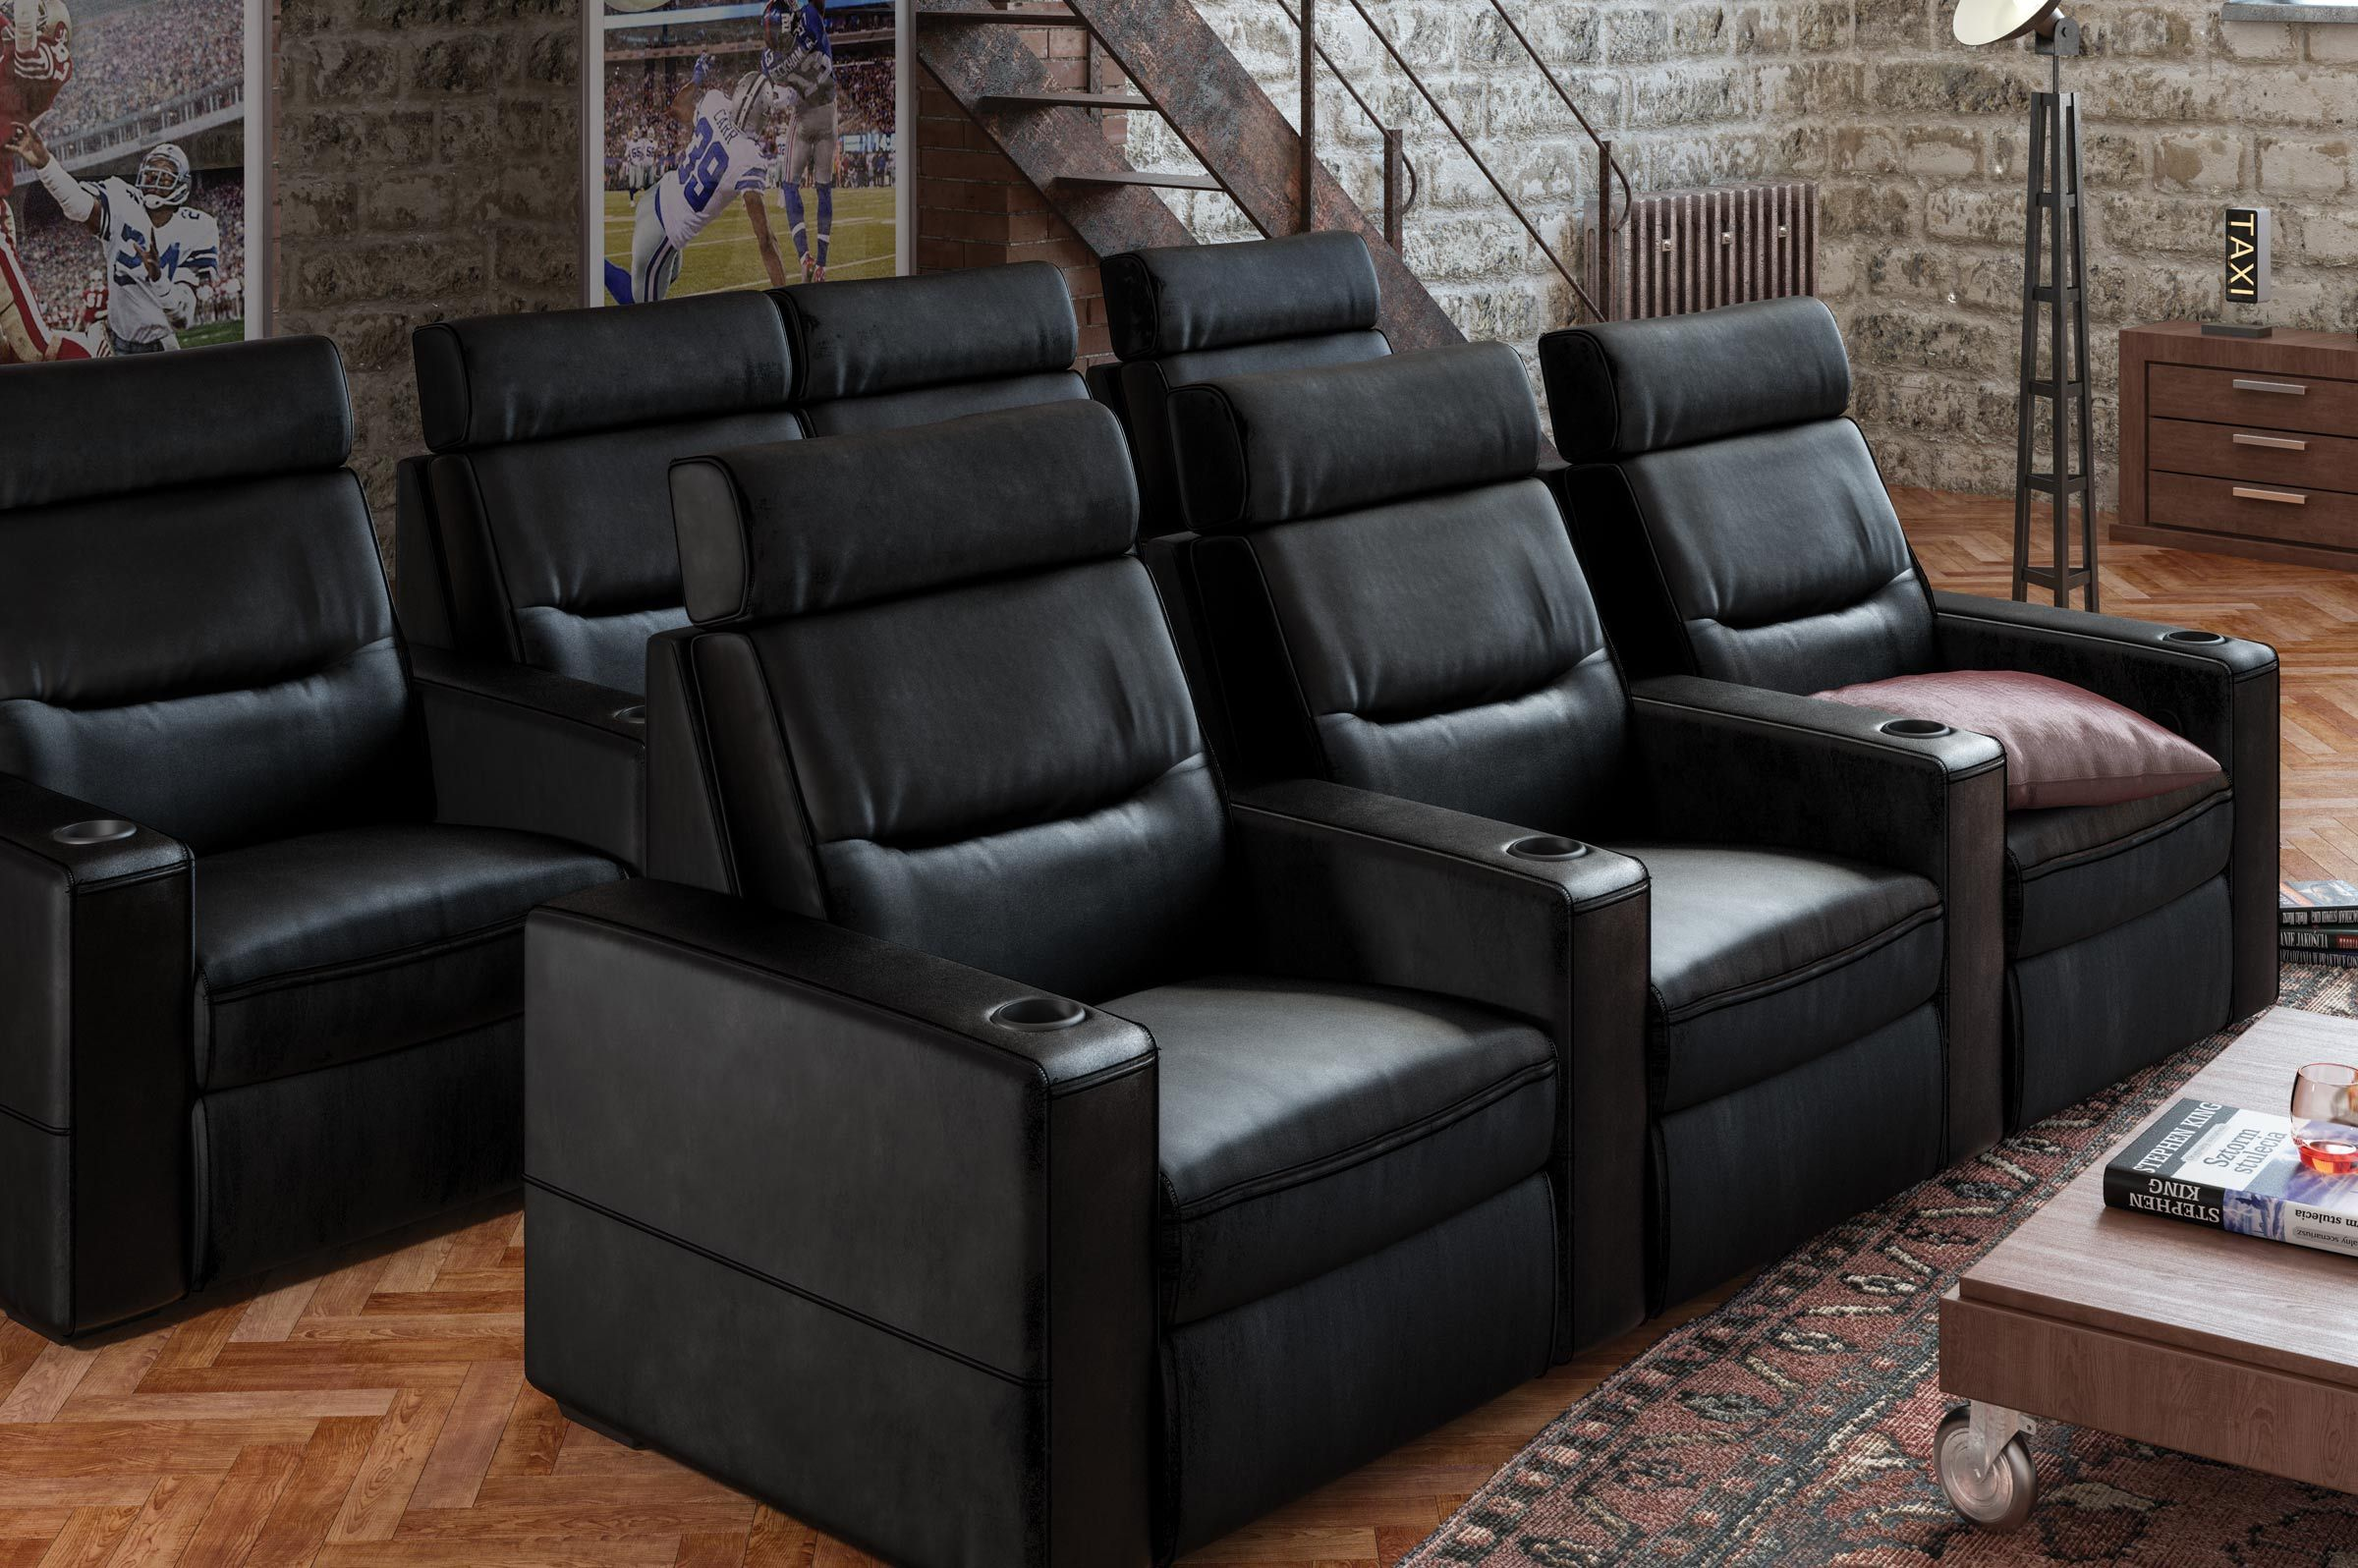 Theater Leder Sofa Sessel Kinosessel Macht Liege Theaterbestuhlung Reihenbestuhlung Liege Stühle Theater Raum Möbel Home Theater Seating Home Theater Seating